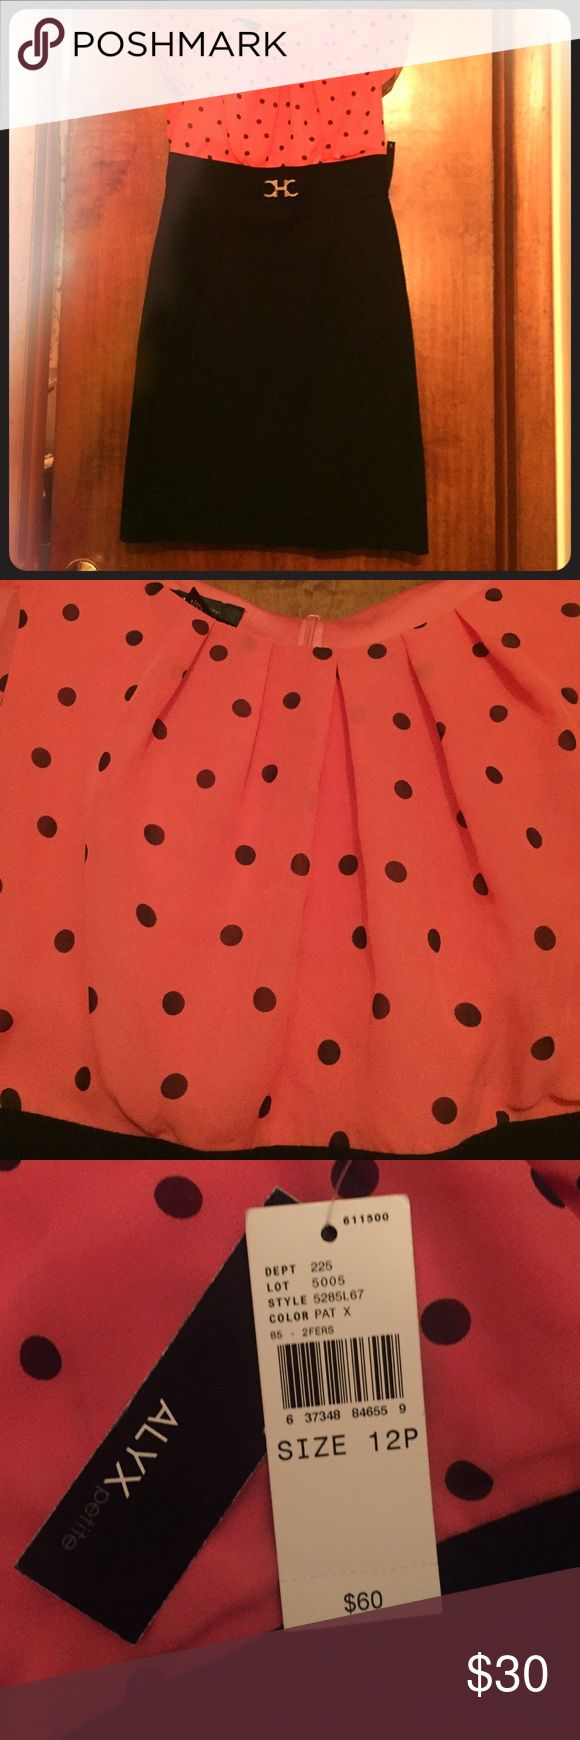 Coral polka dot dress Fabulous coral polka dot dress. Brand New, never worn. Alyx Petite dress size 12P. Excellent condition. Smoke free. Pet free home. Don't like the price? Make an offer 🙂 Dresses